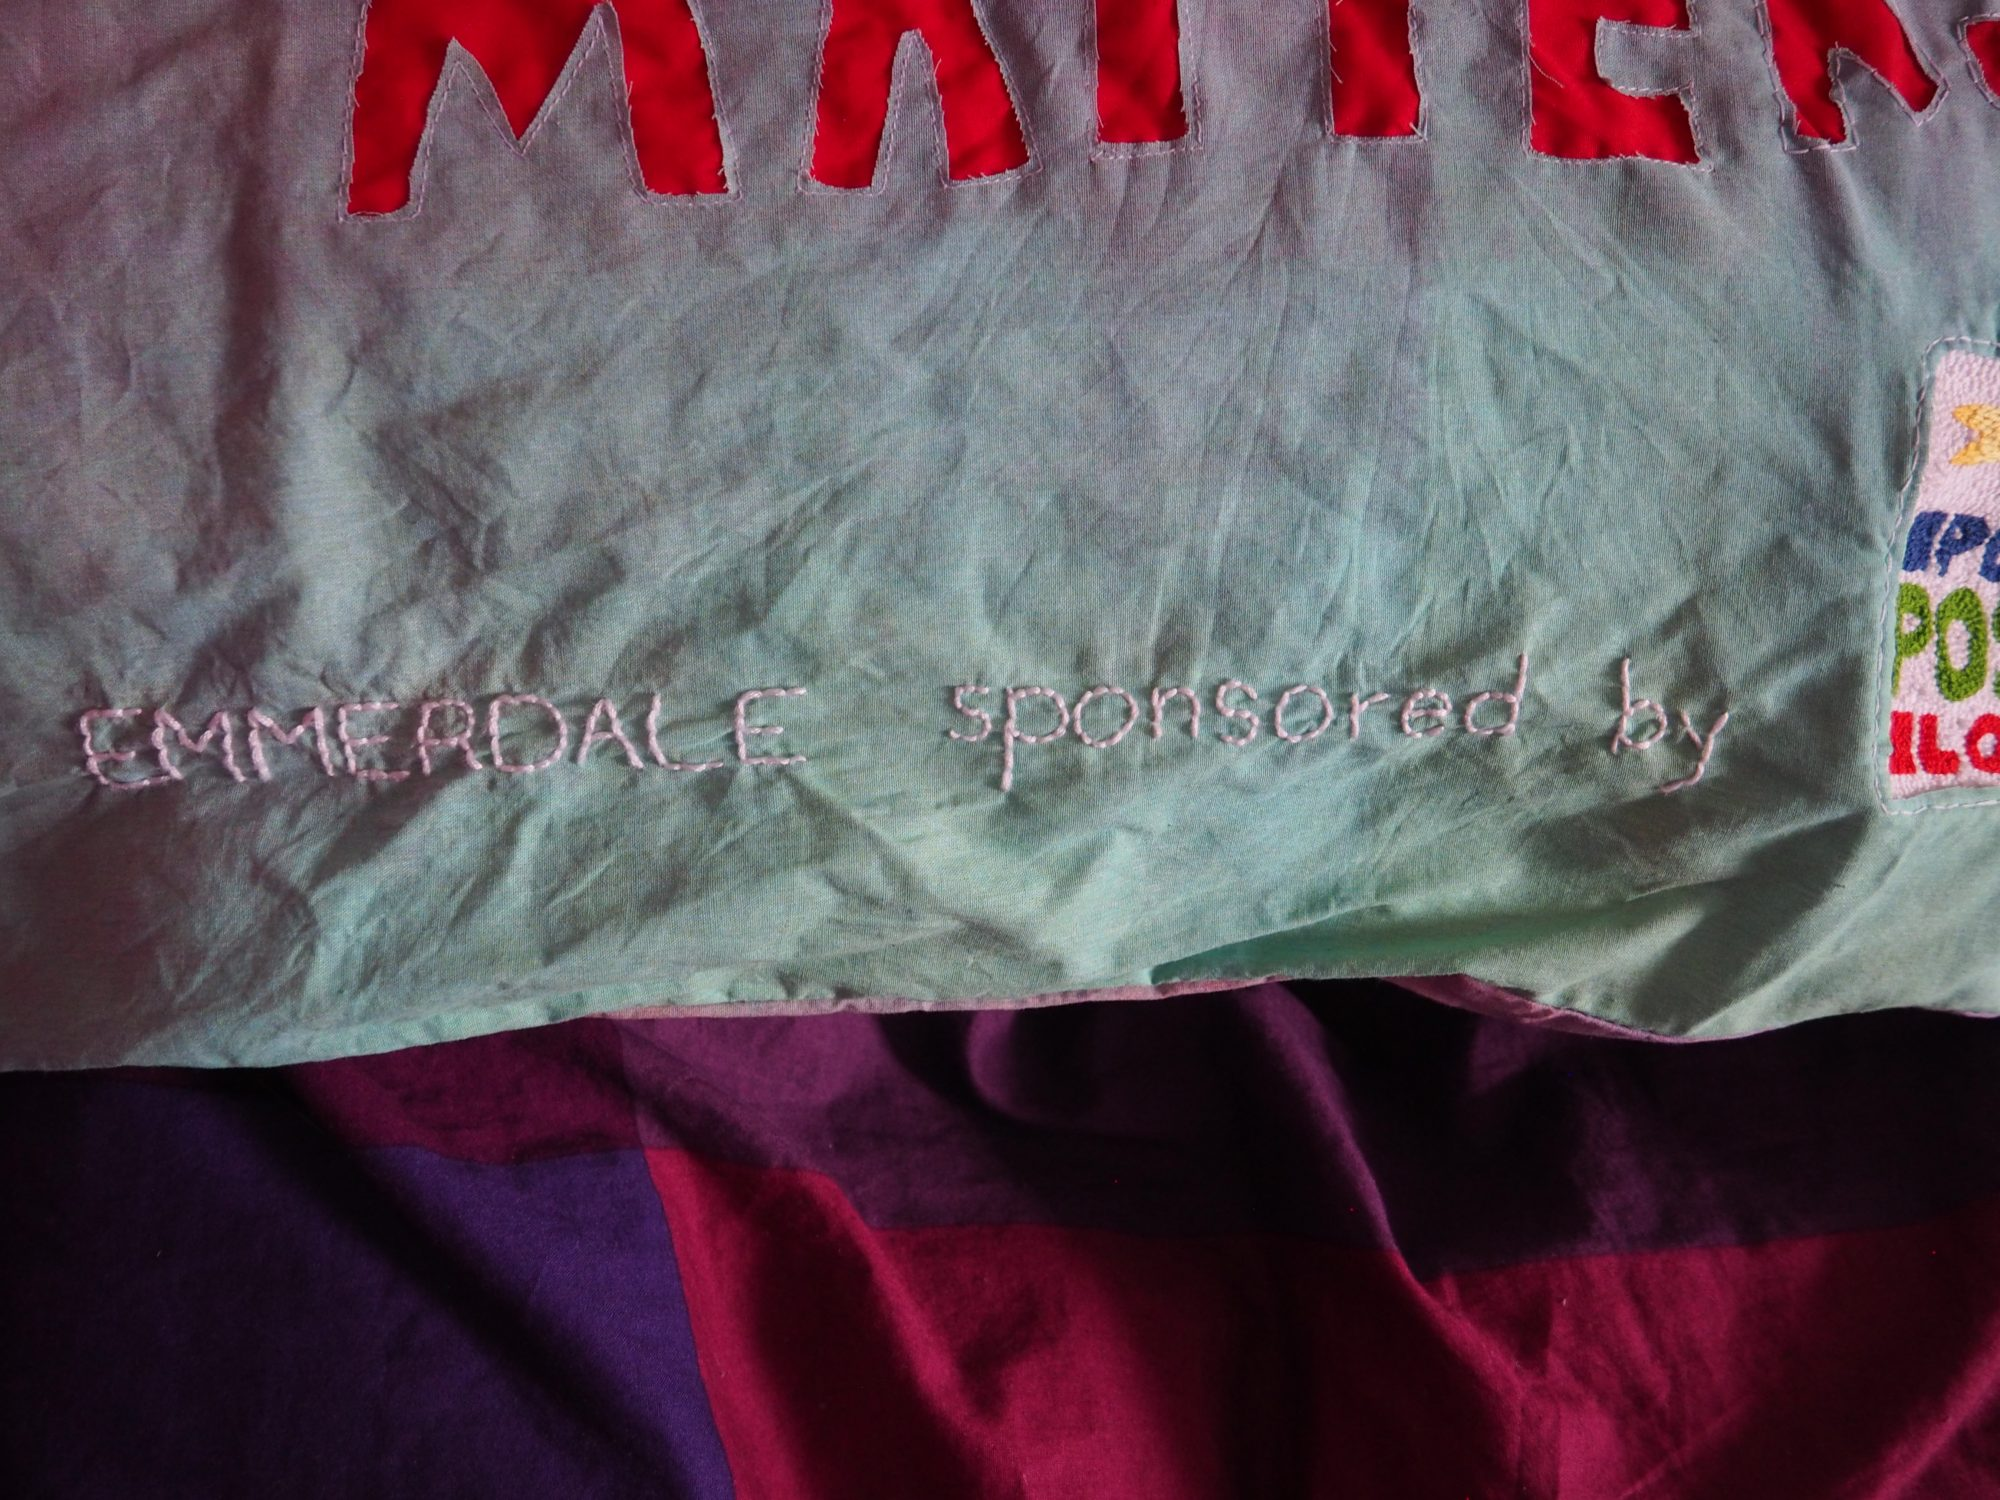 """On a sheet of darker fabric sits a section of the bottom edge of a pillow. The fabric is a pastel green and has the words: """"EMMERDALE sponsored by"""" in thick white embroidery thread."""